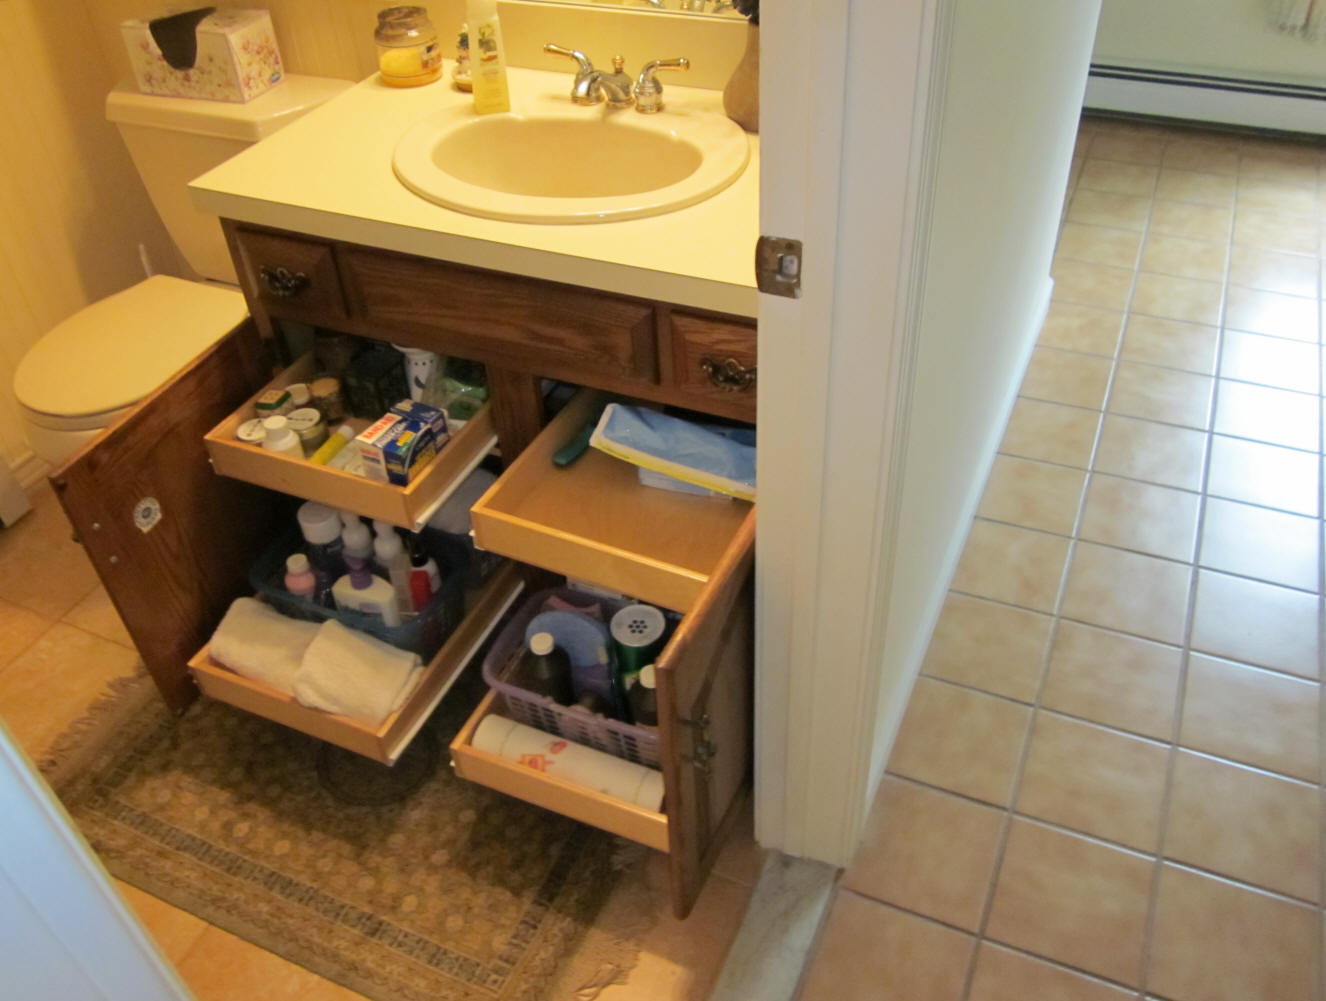 Bathroom Cabinet Storage Inserts shelves that slide testimonial page for pull out shelves reviews